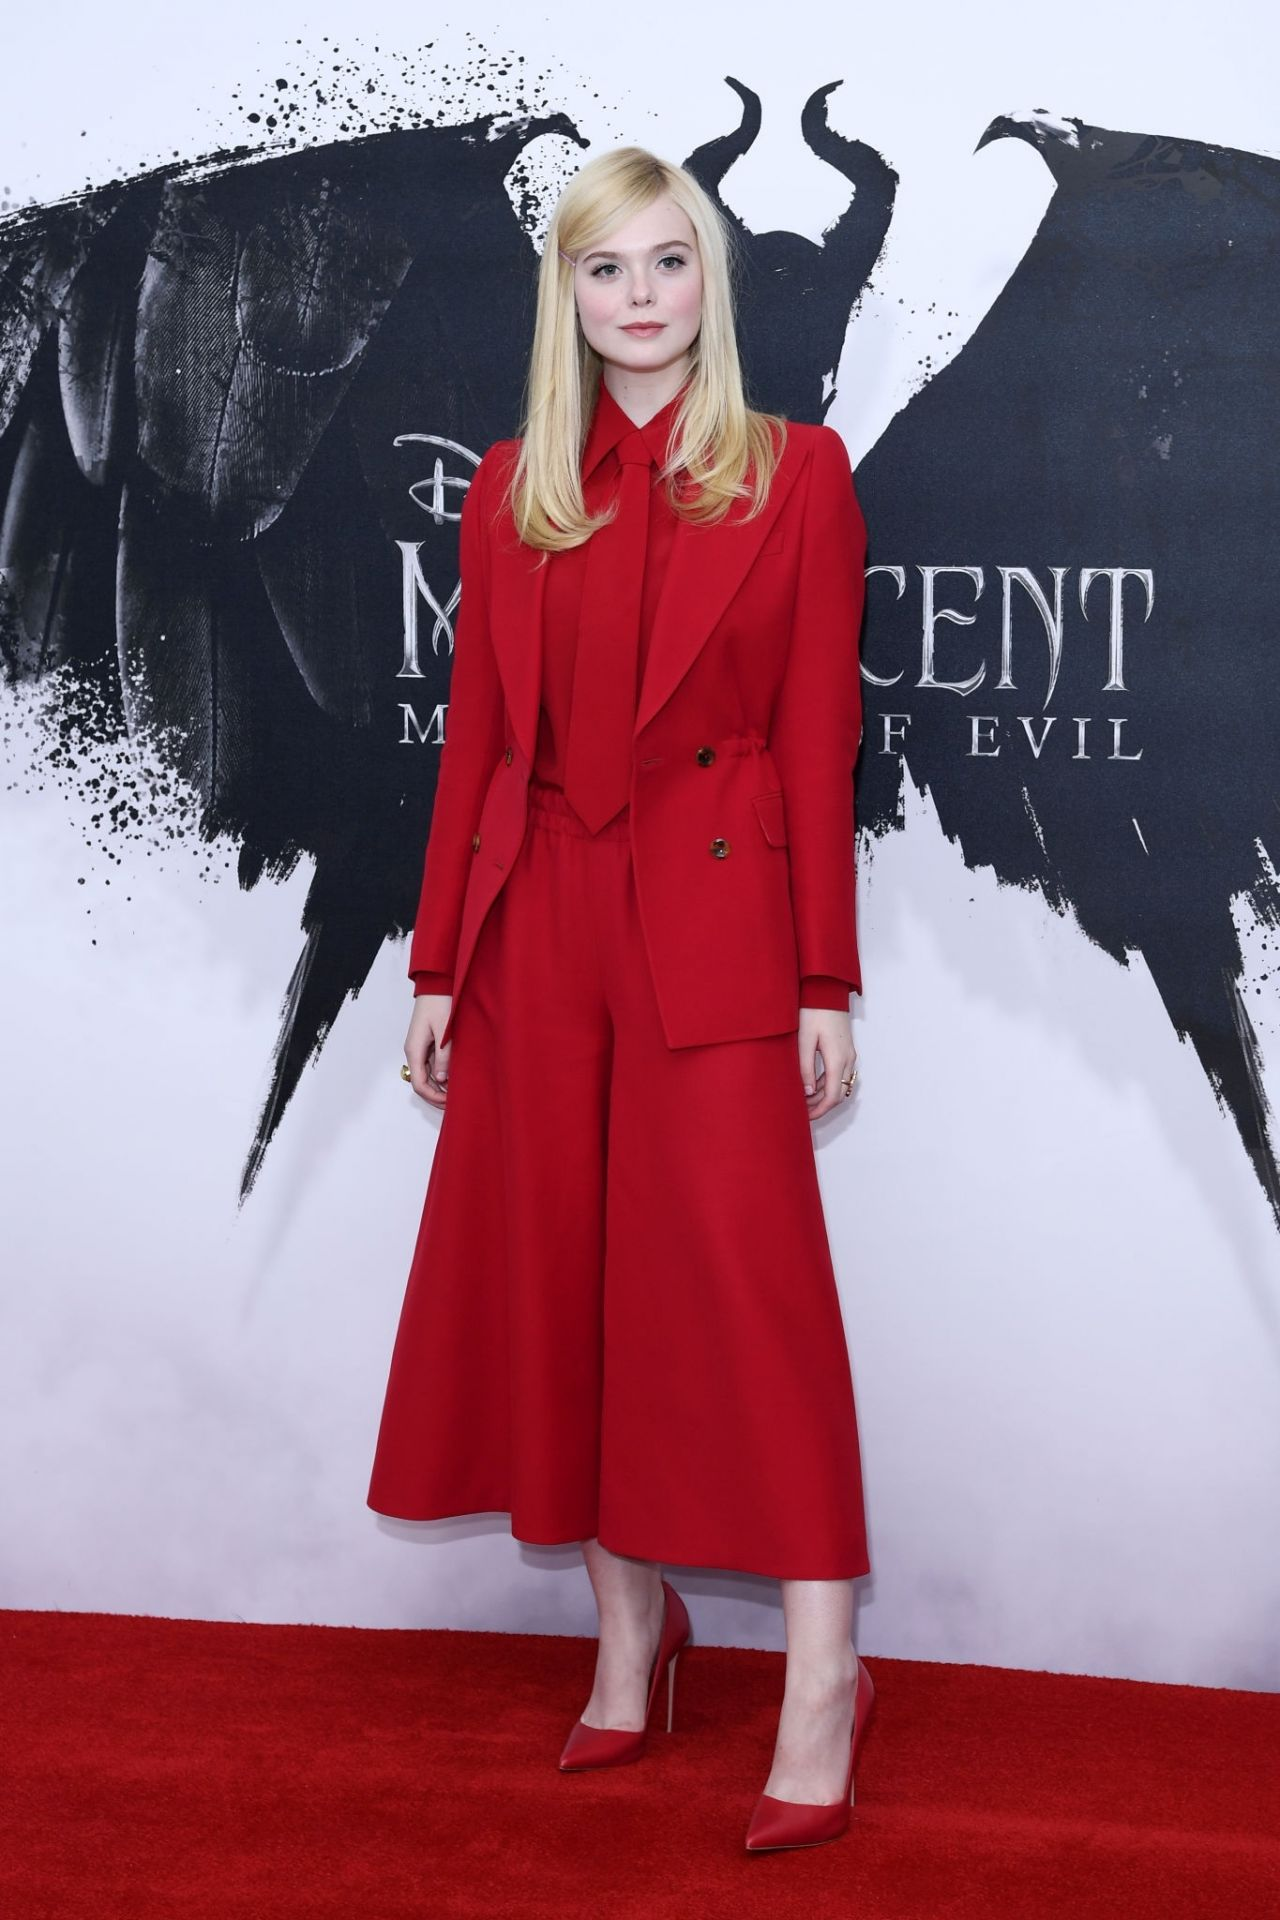 elle-fanning-maleficent-mistress-of-evil-photocall-in-london-6